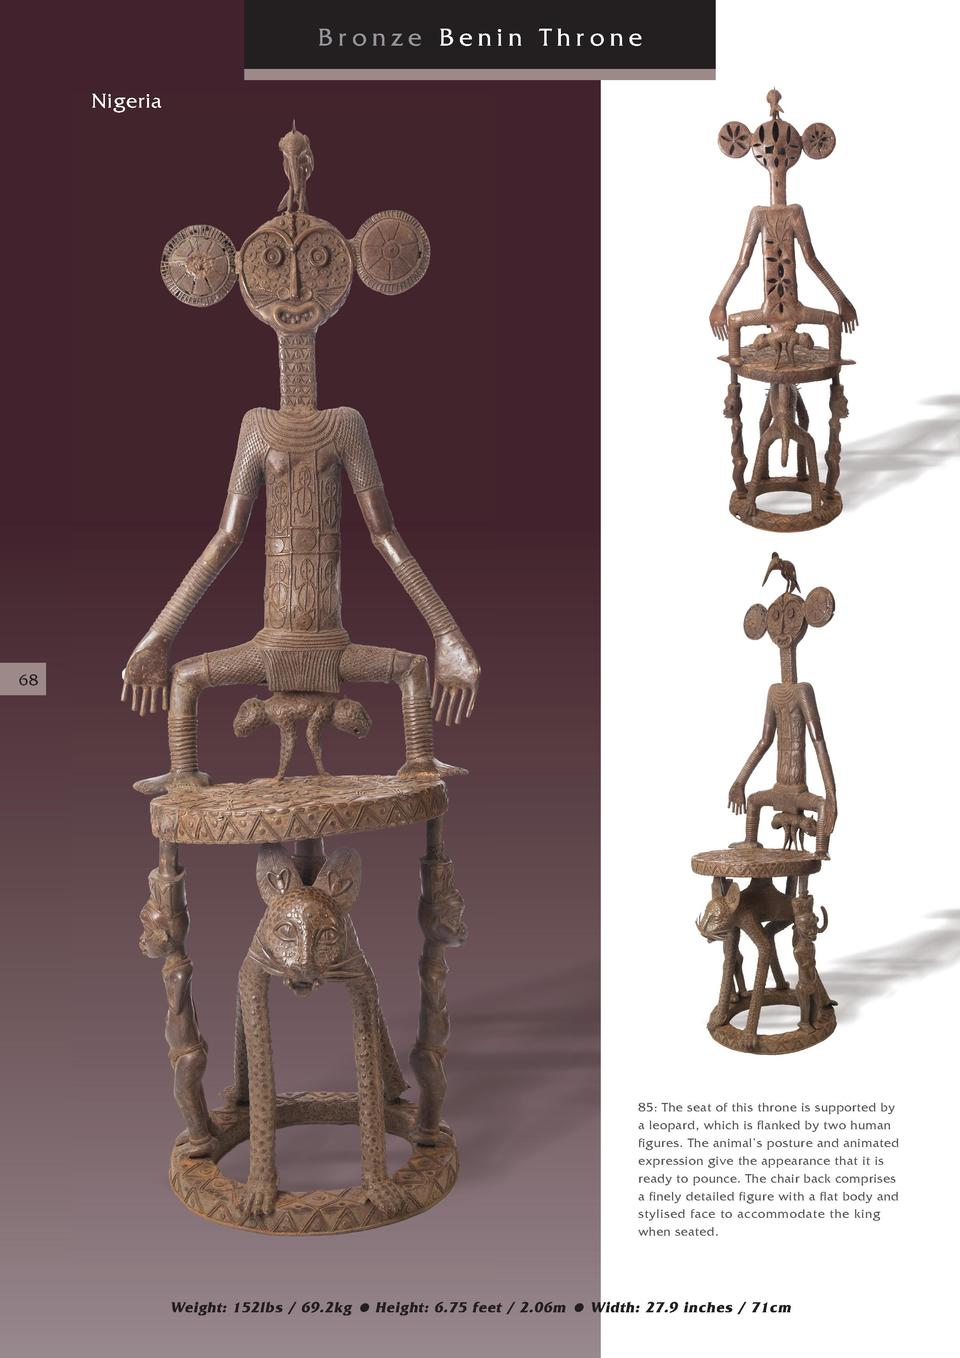 Bronze Benin Throne Nigeria  68  85  The seat of this throne is supported by a leopard, which is flanked by two human figu...